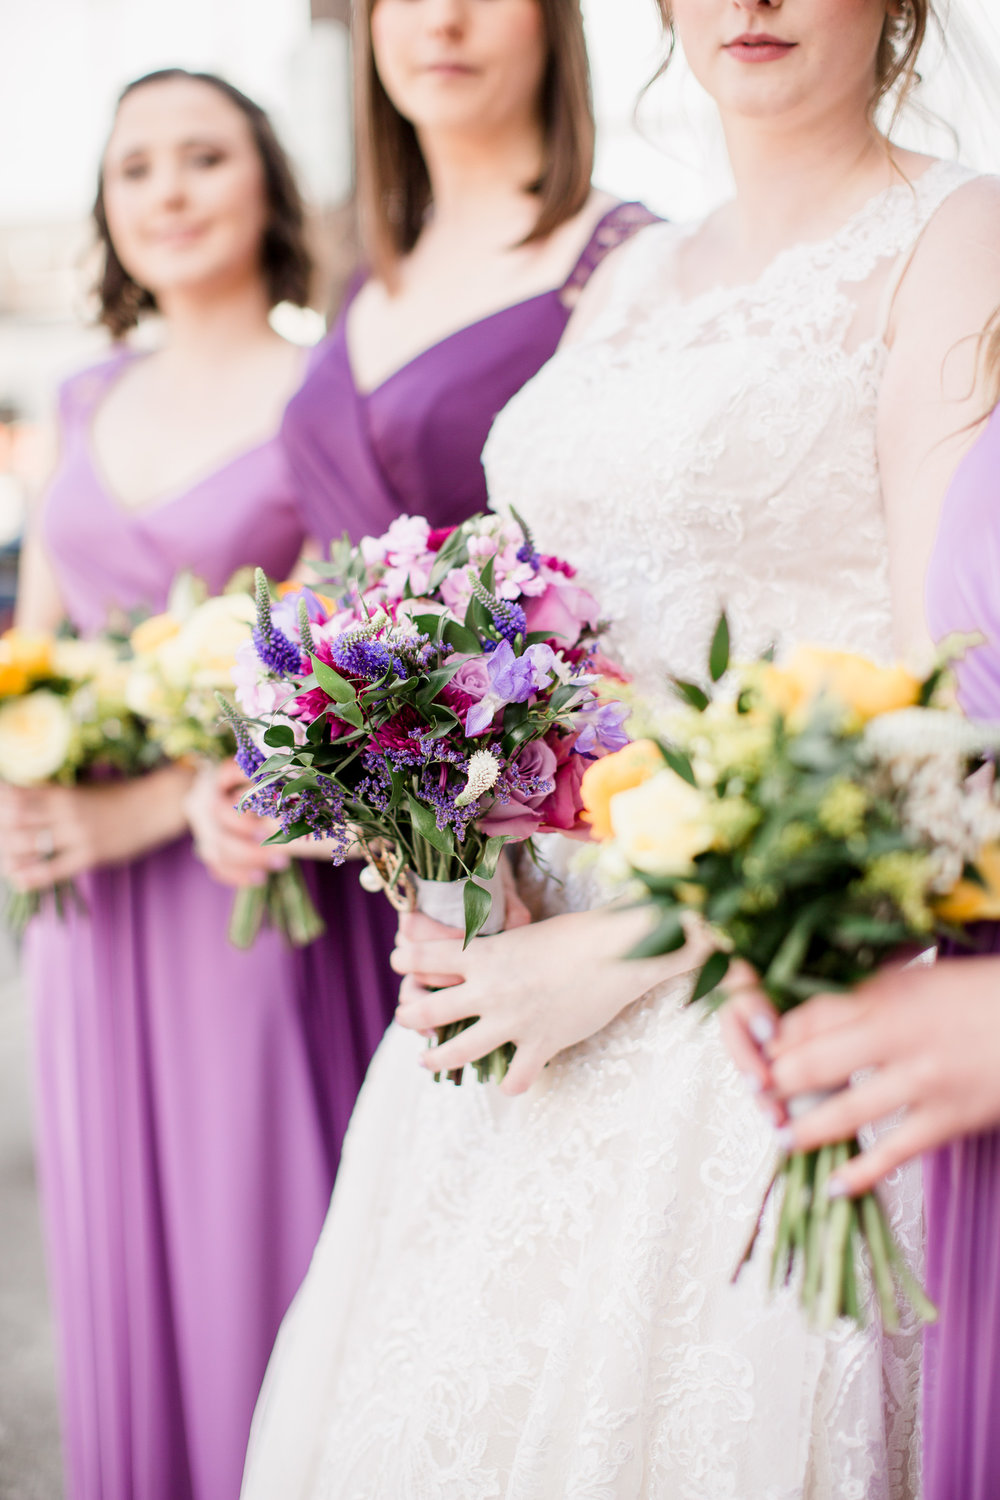 Downtown Knoxville Wedding Venue // Central Avenue Reception // Bridesmaids // Relix Knoxville Floral Design